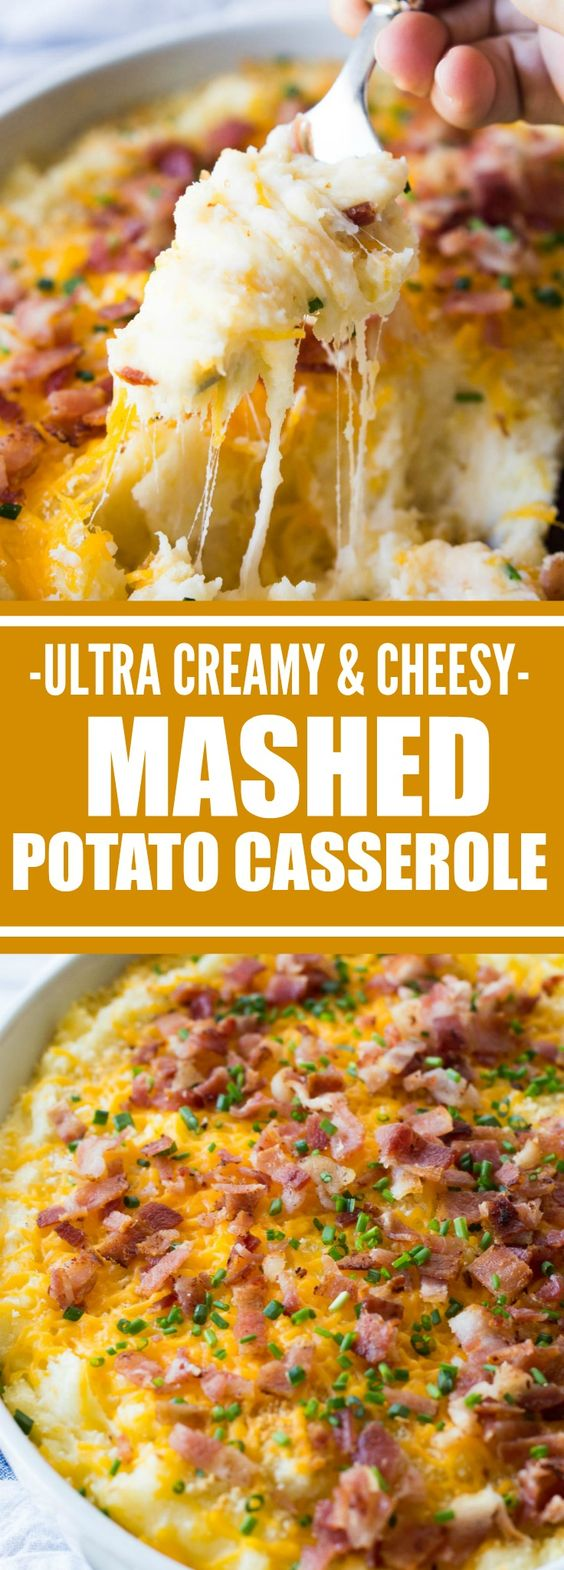 ★★★★☆ 7561 ratings   Mashed Potato Casserole  #HEALTHYFOOD #EASYRECIPES #DINNER #LAUCH #DELICIOUS #EASY #HOLIDAYS #RECIPE #Mashed #Potato #Casserole